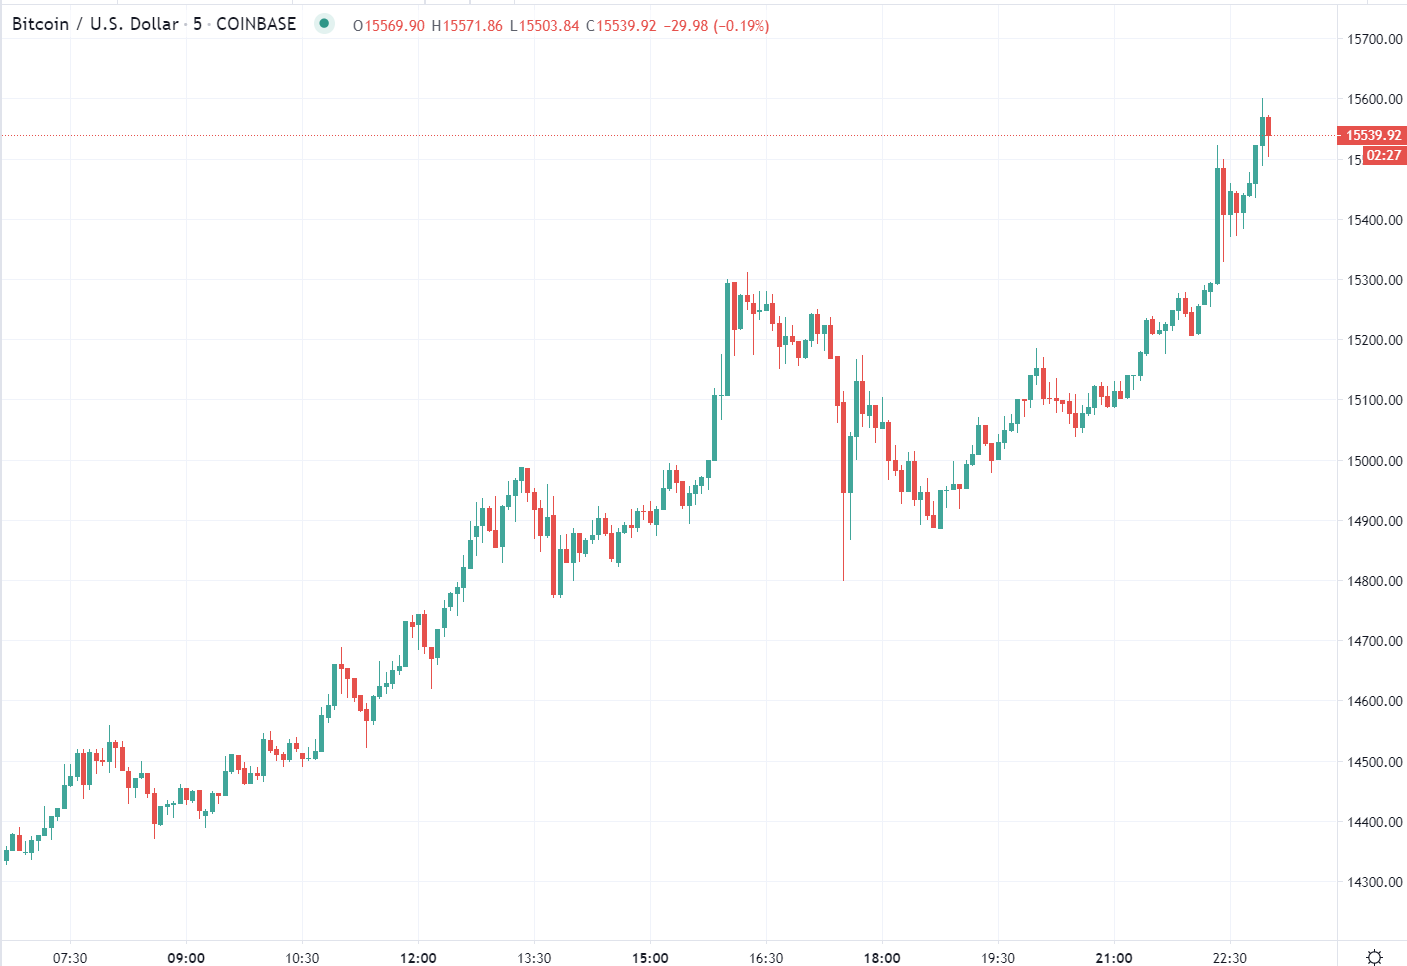 BTC is surging, jumping above 15.5K now: